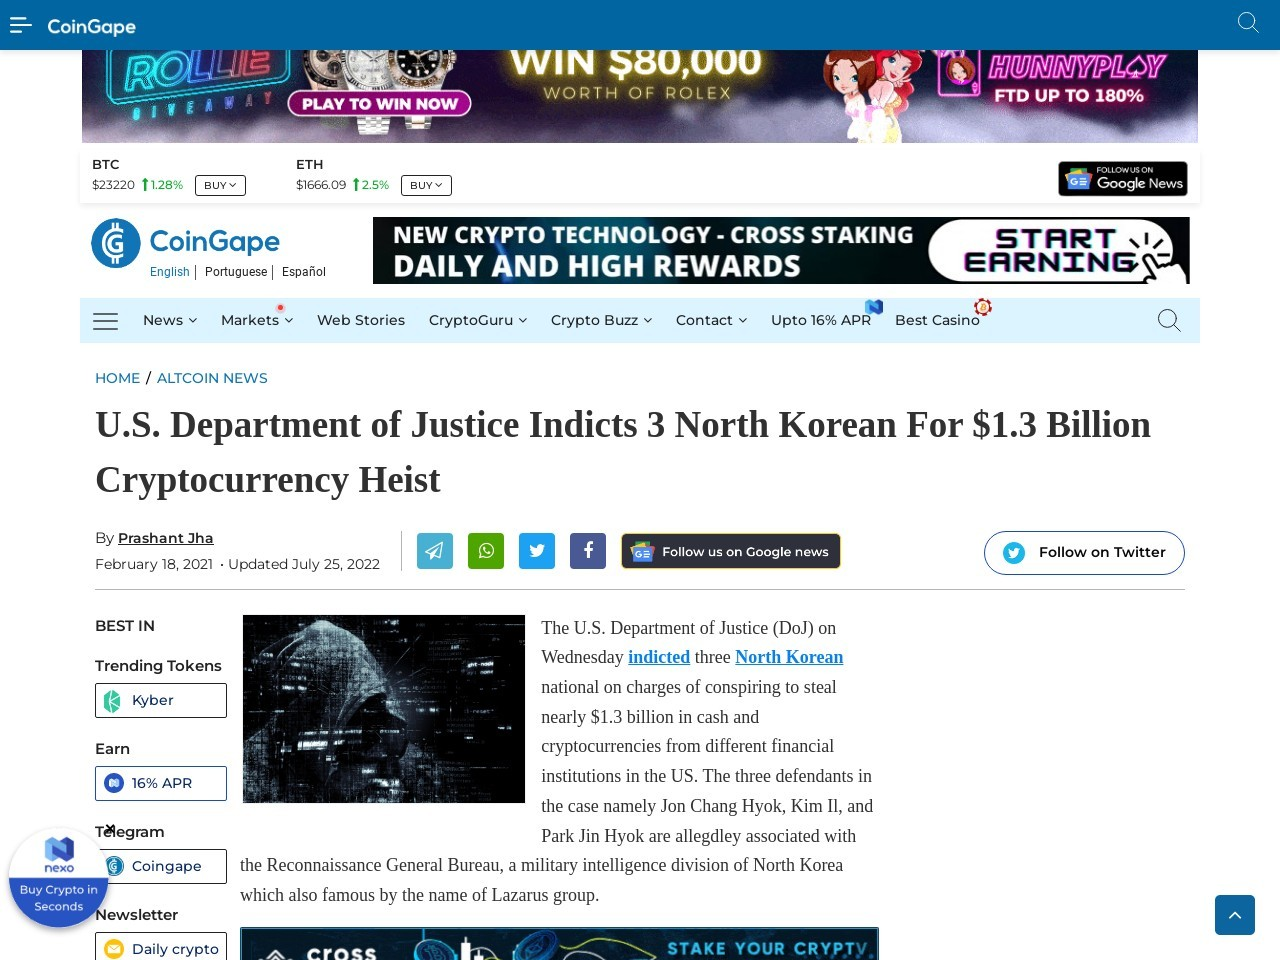 U.S. Department of Justice Indicts 3 North Korean For $1.3 Billion Cryptocurrency Heist